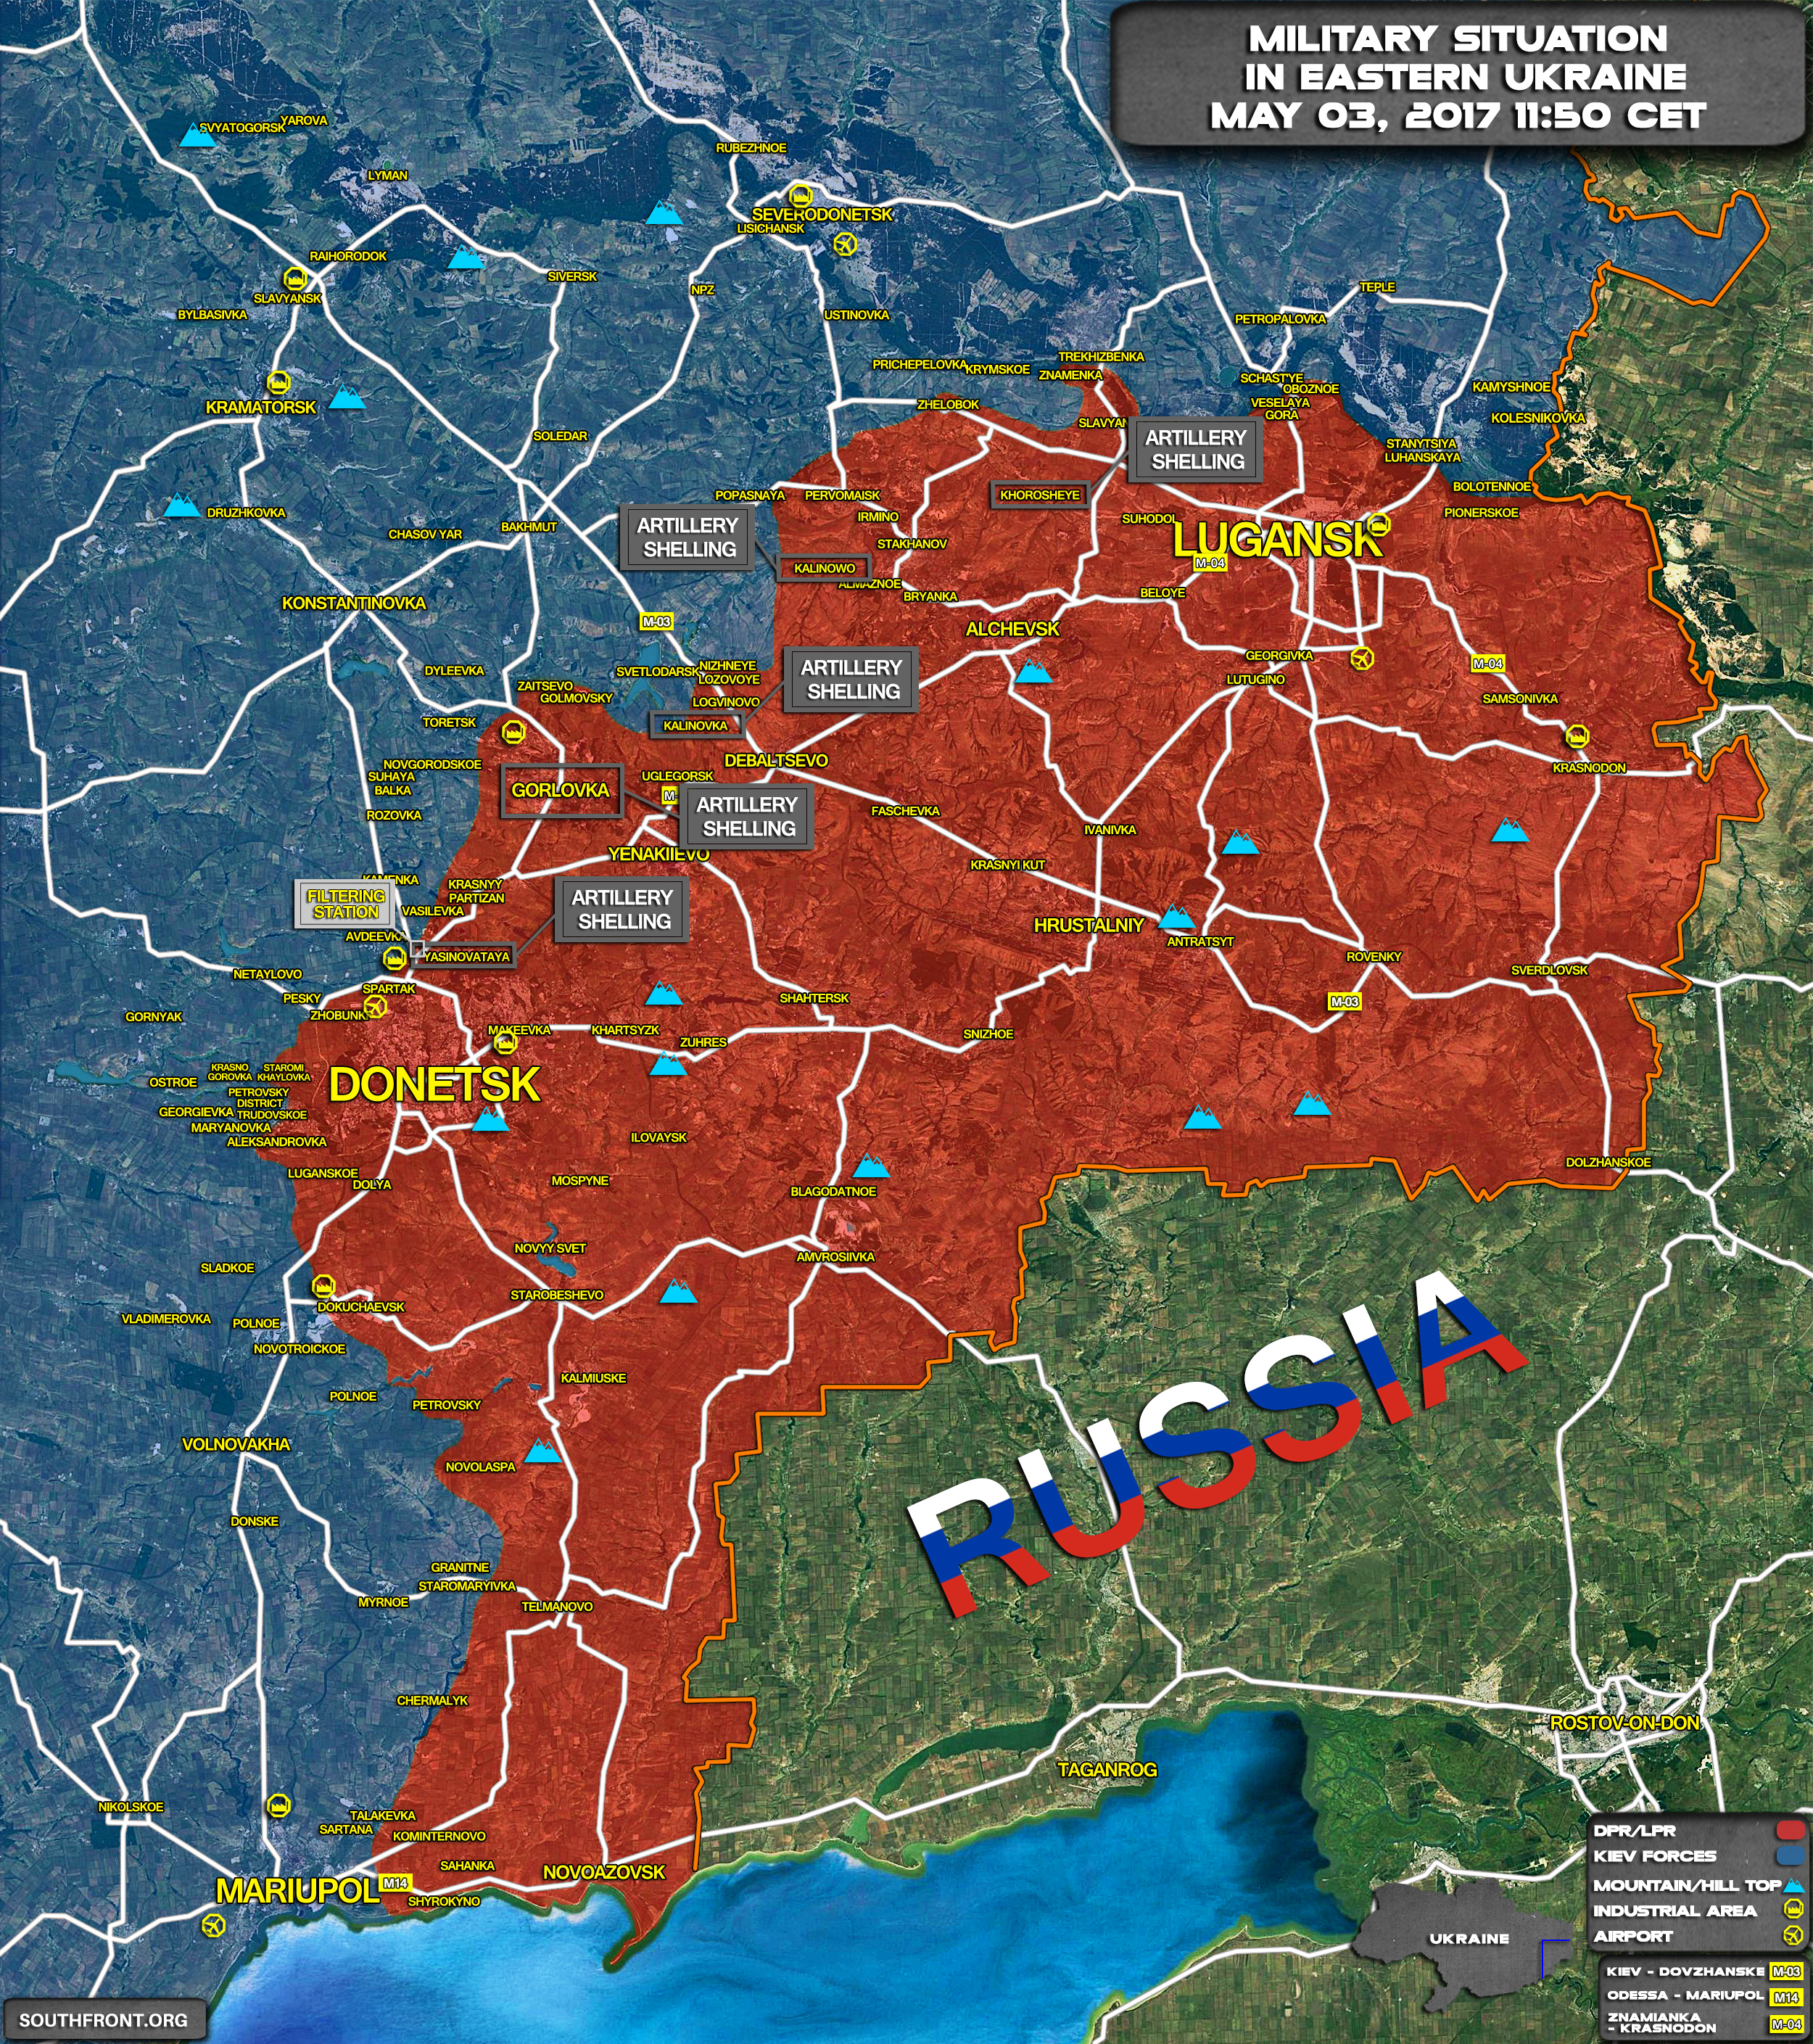 Humanitarian Situation Worsening In Eastern Ukraine Amid Continued Military Tensions